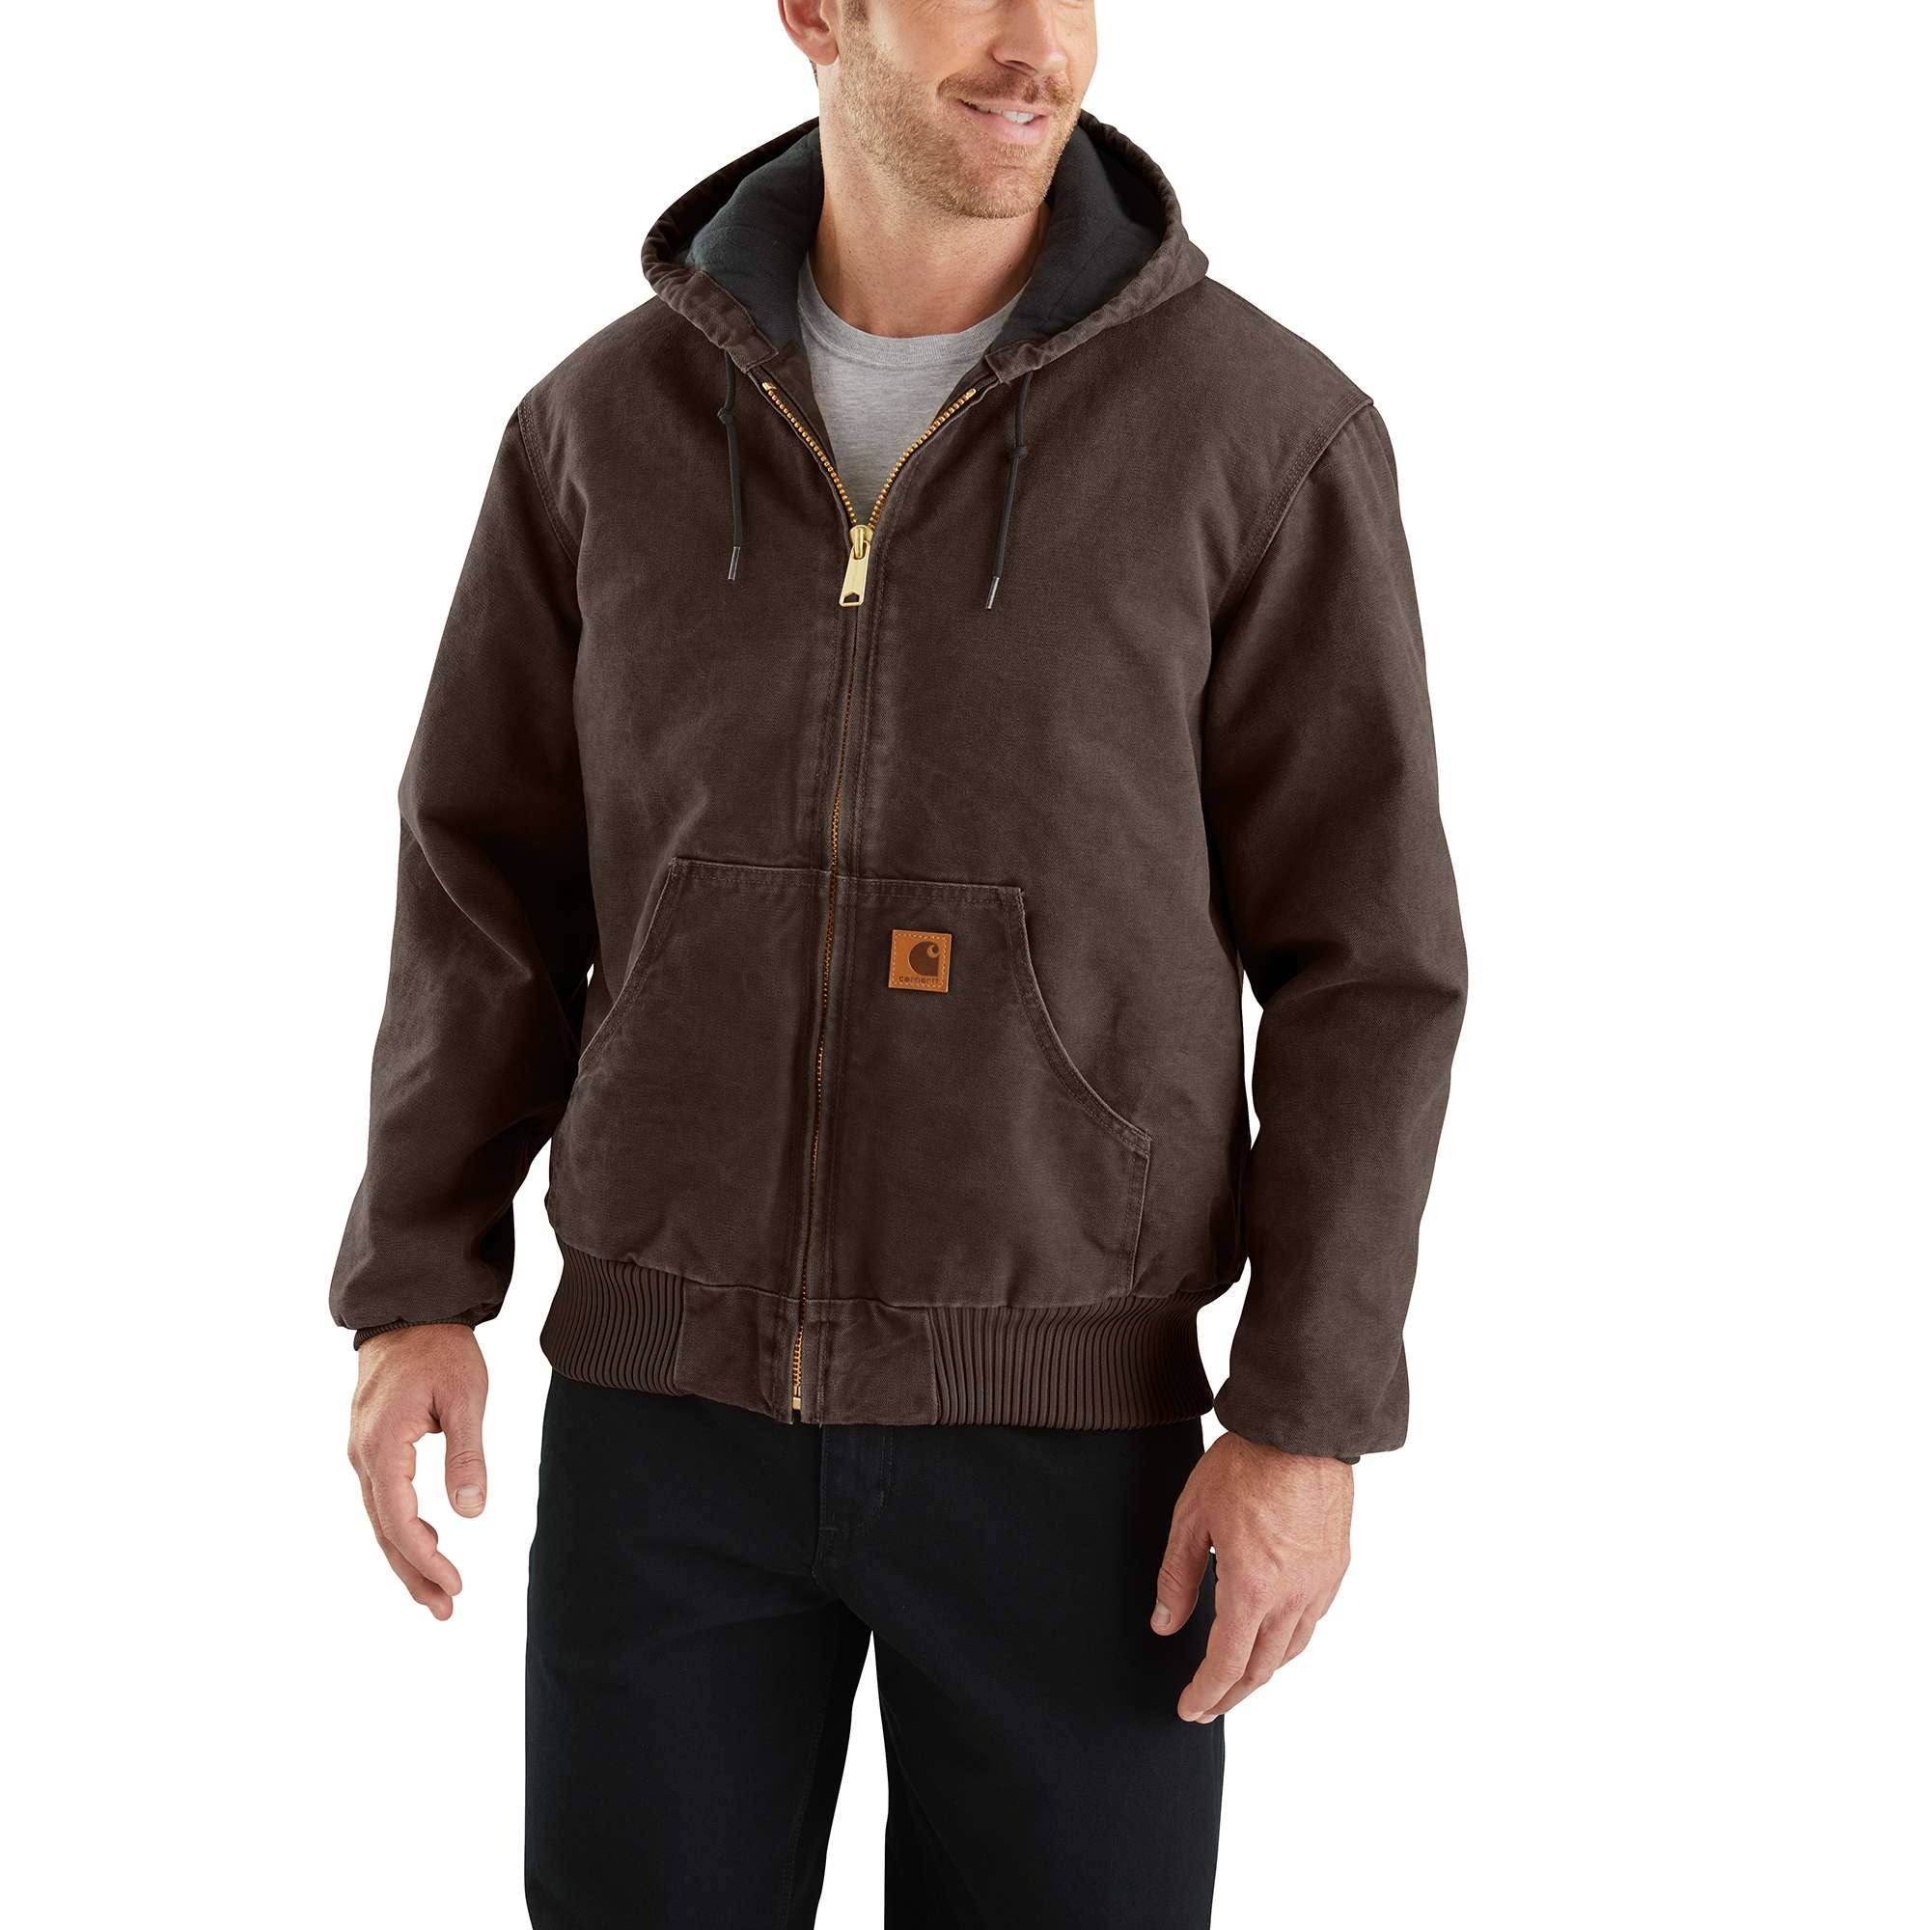 Carhartt Men's Quilted Flannel Lined Sandstone Active Jacket - Large - Dark Brown